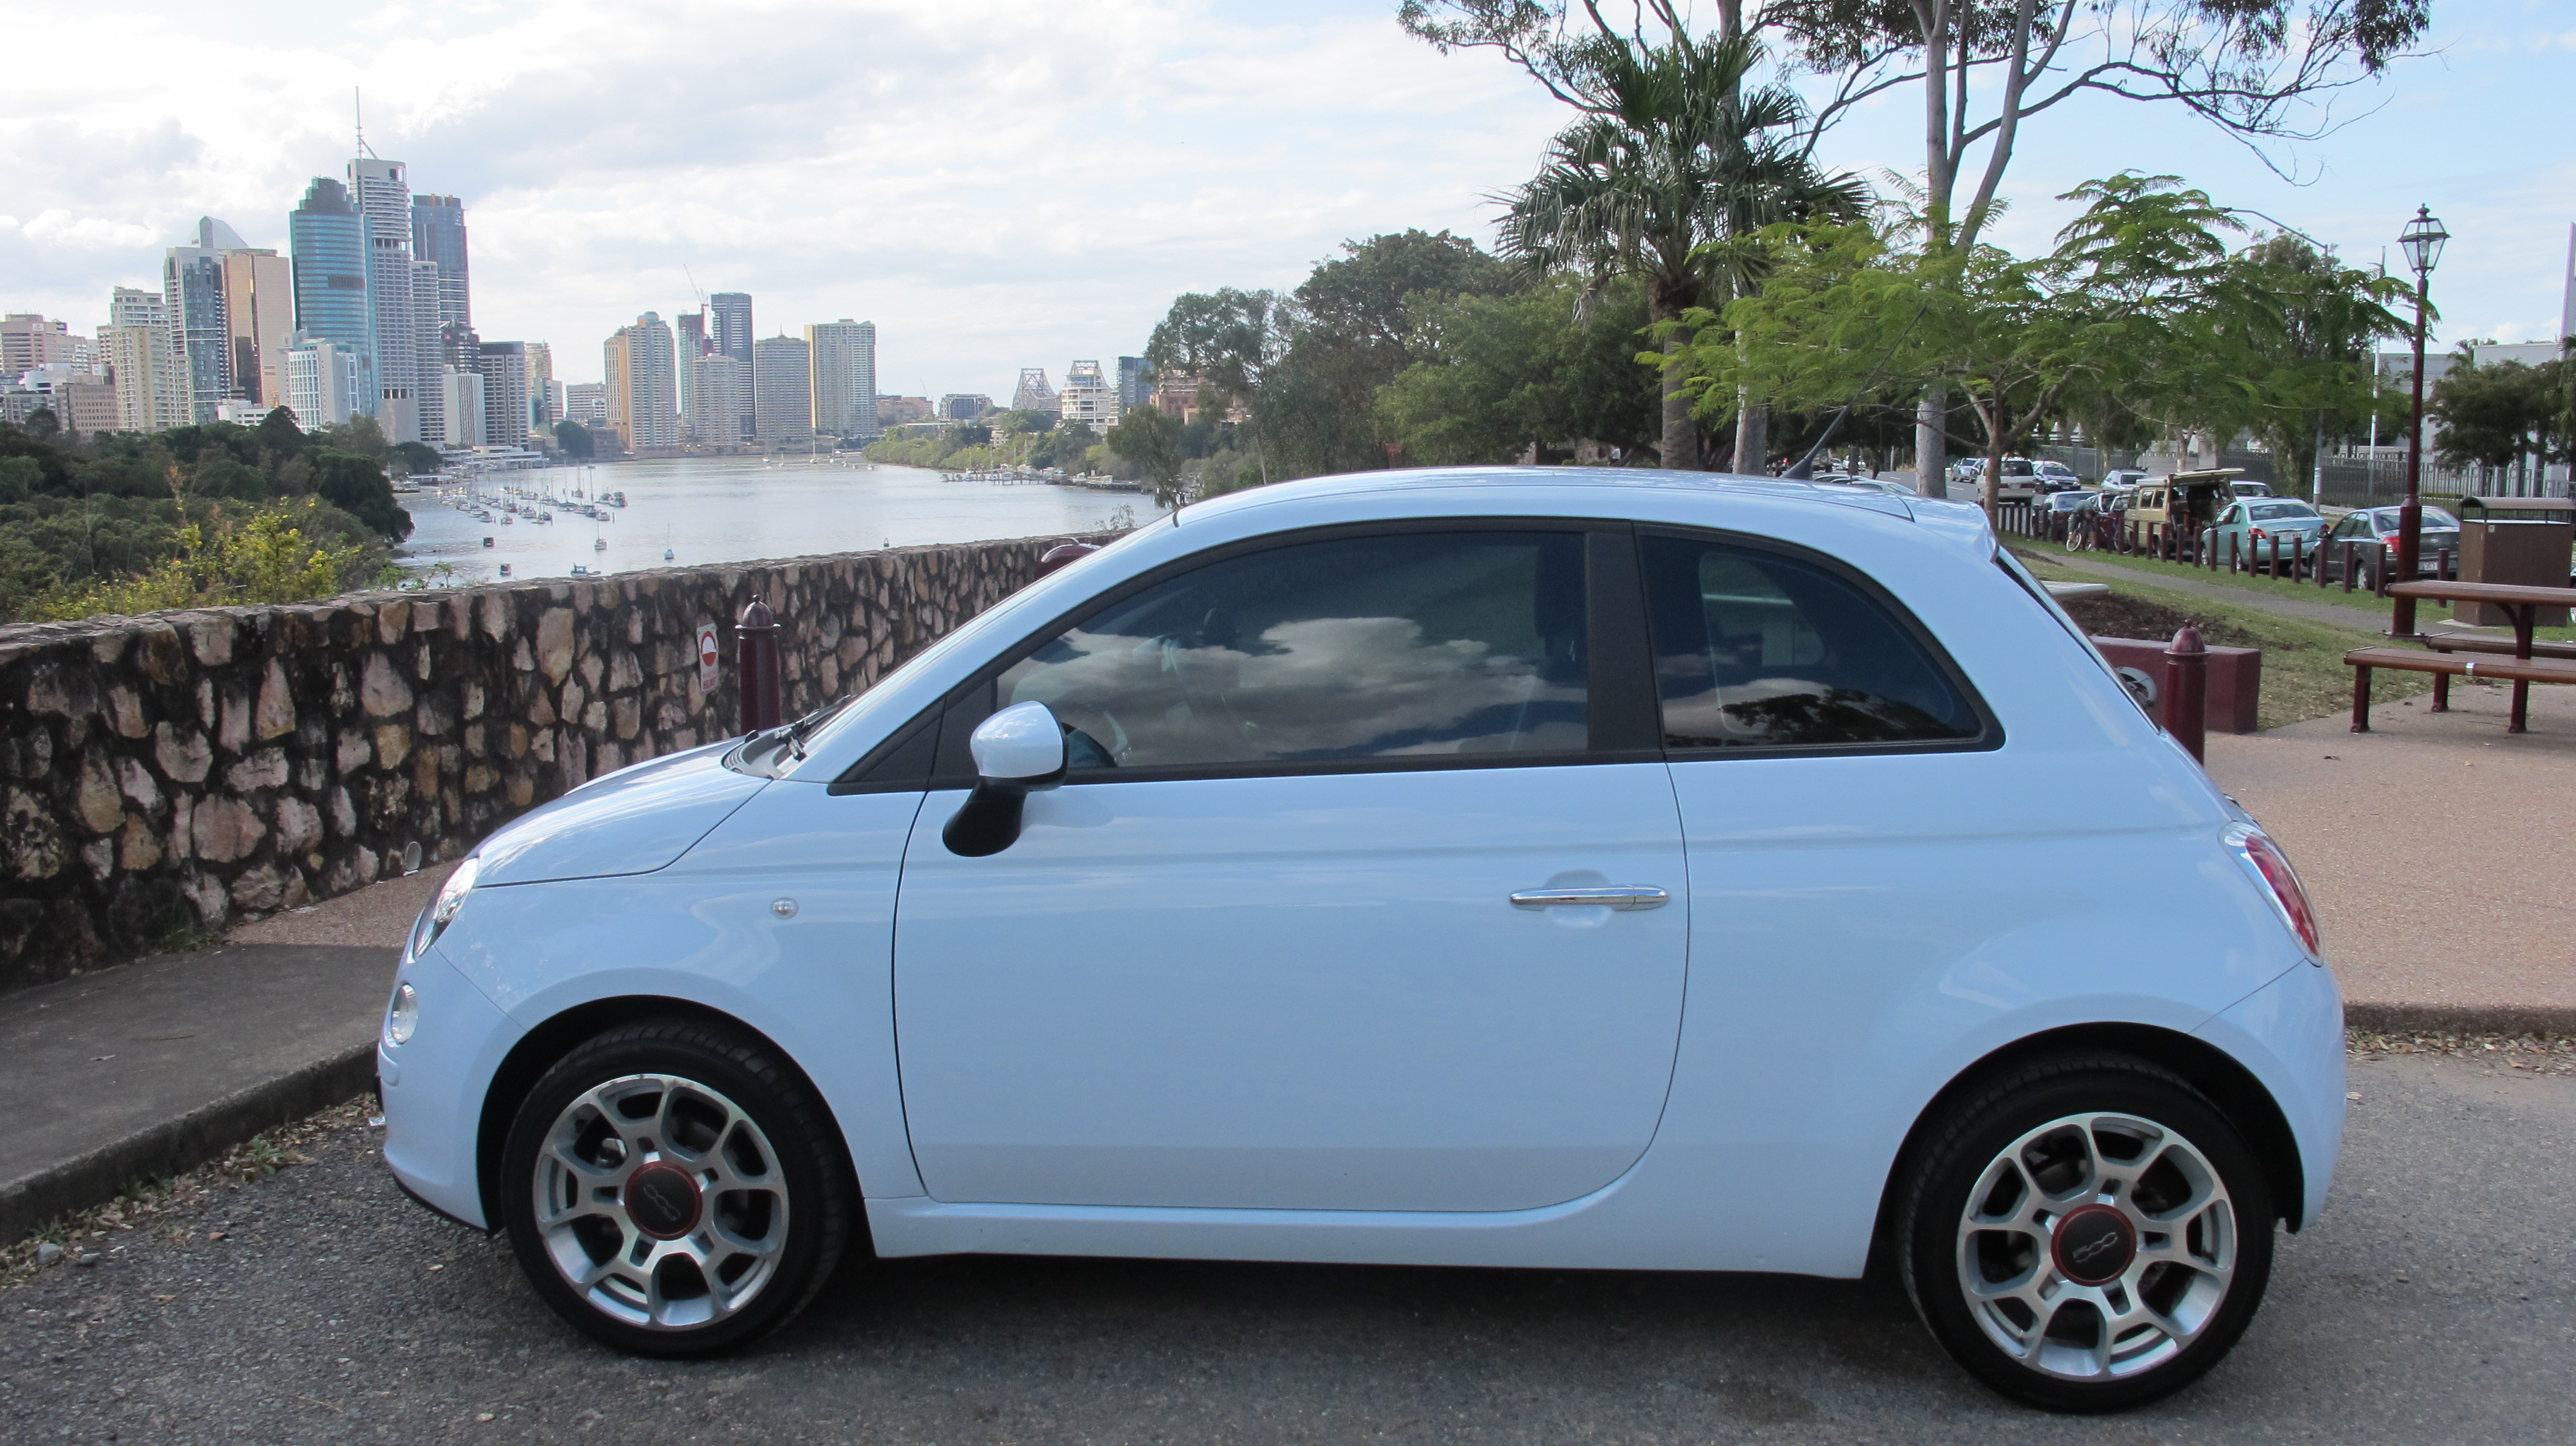 I Love My Baby Blue Fiat Bambino Bagni Di Lucca And Beyond